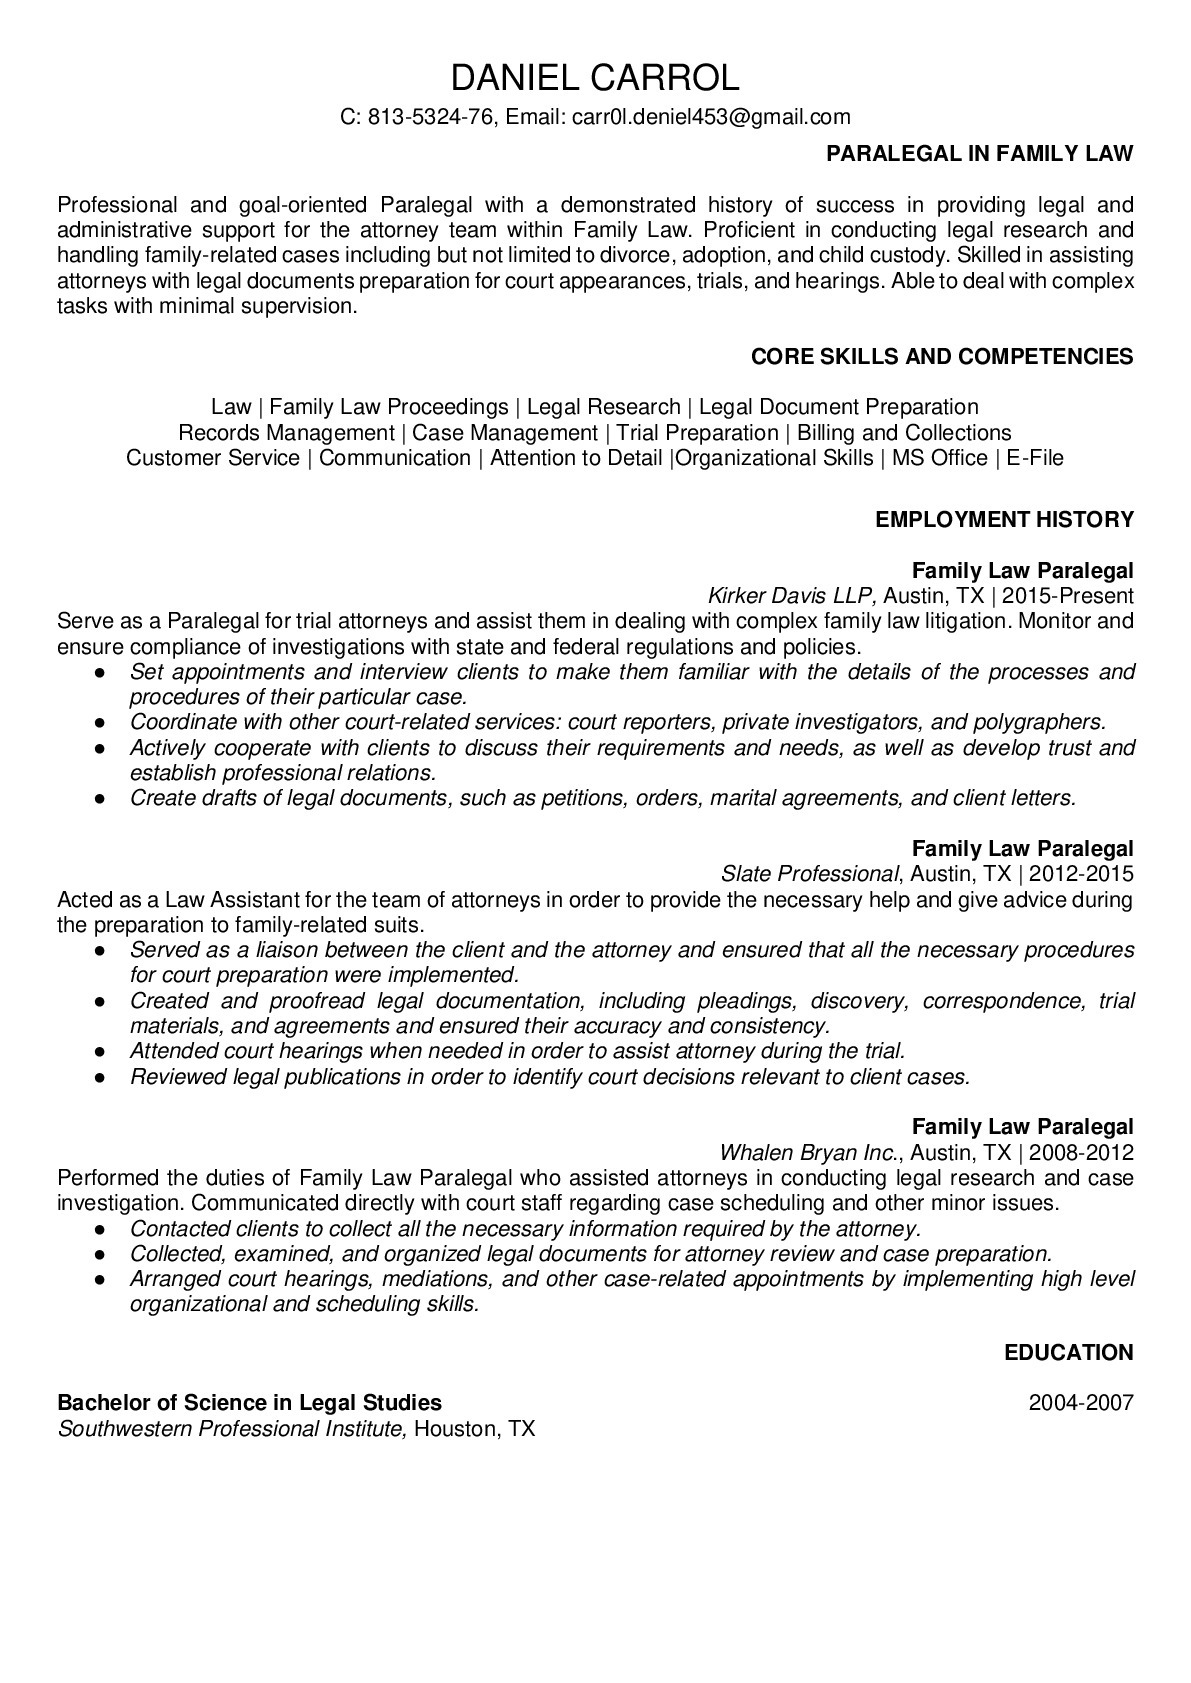 Resume for Paralegal